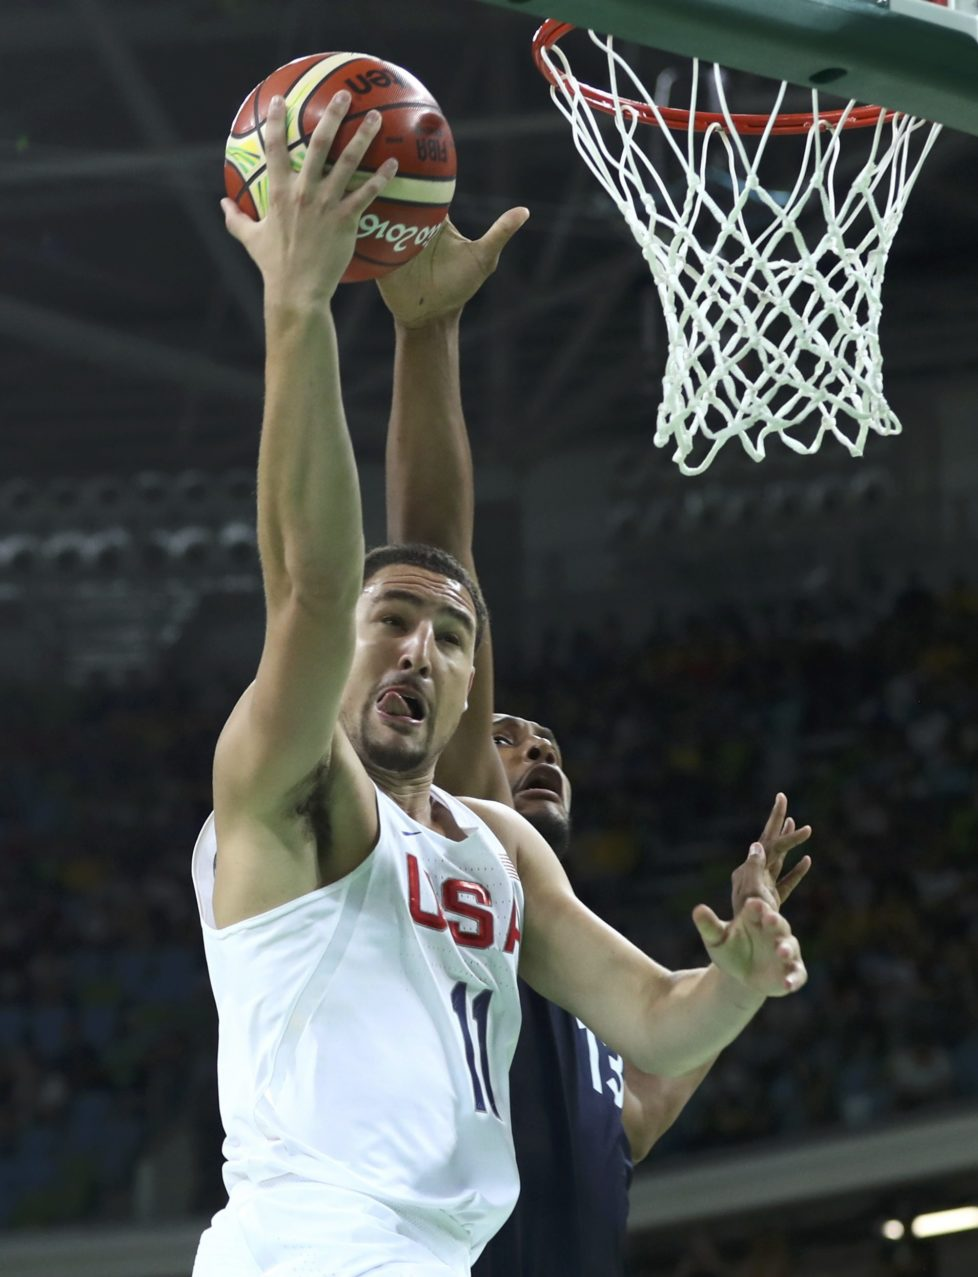 2016 Rio Olympics - Basketball - Preliminary - Men's Preliminary Round Group A USA v France - Carioca Arena 1 - Rio de Janeiro, Brazil - 14/08/2016. Klay Thompson (USA) of the USA shoots past Boris Diaw (FRA) of France. REUTERS/Antonio Bronic TPX IMAGES OF THE DAY FOR EDITORIAL USE ONLY. NOT FOR SALE FOR MARKETING OR ADVERTISING CAMPAIGNS.